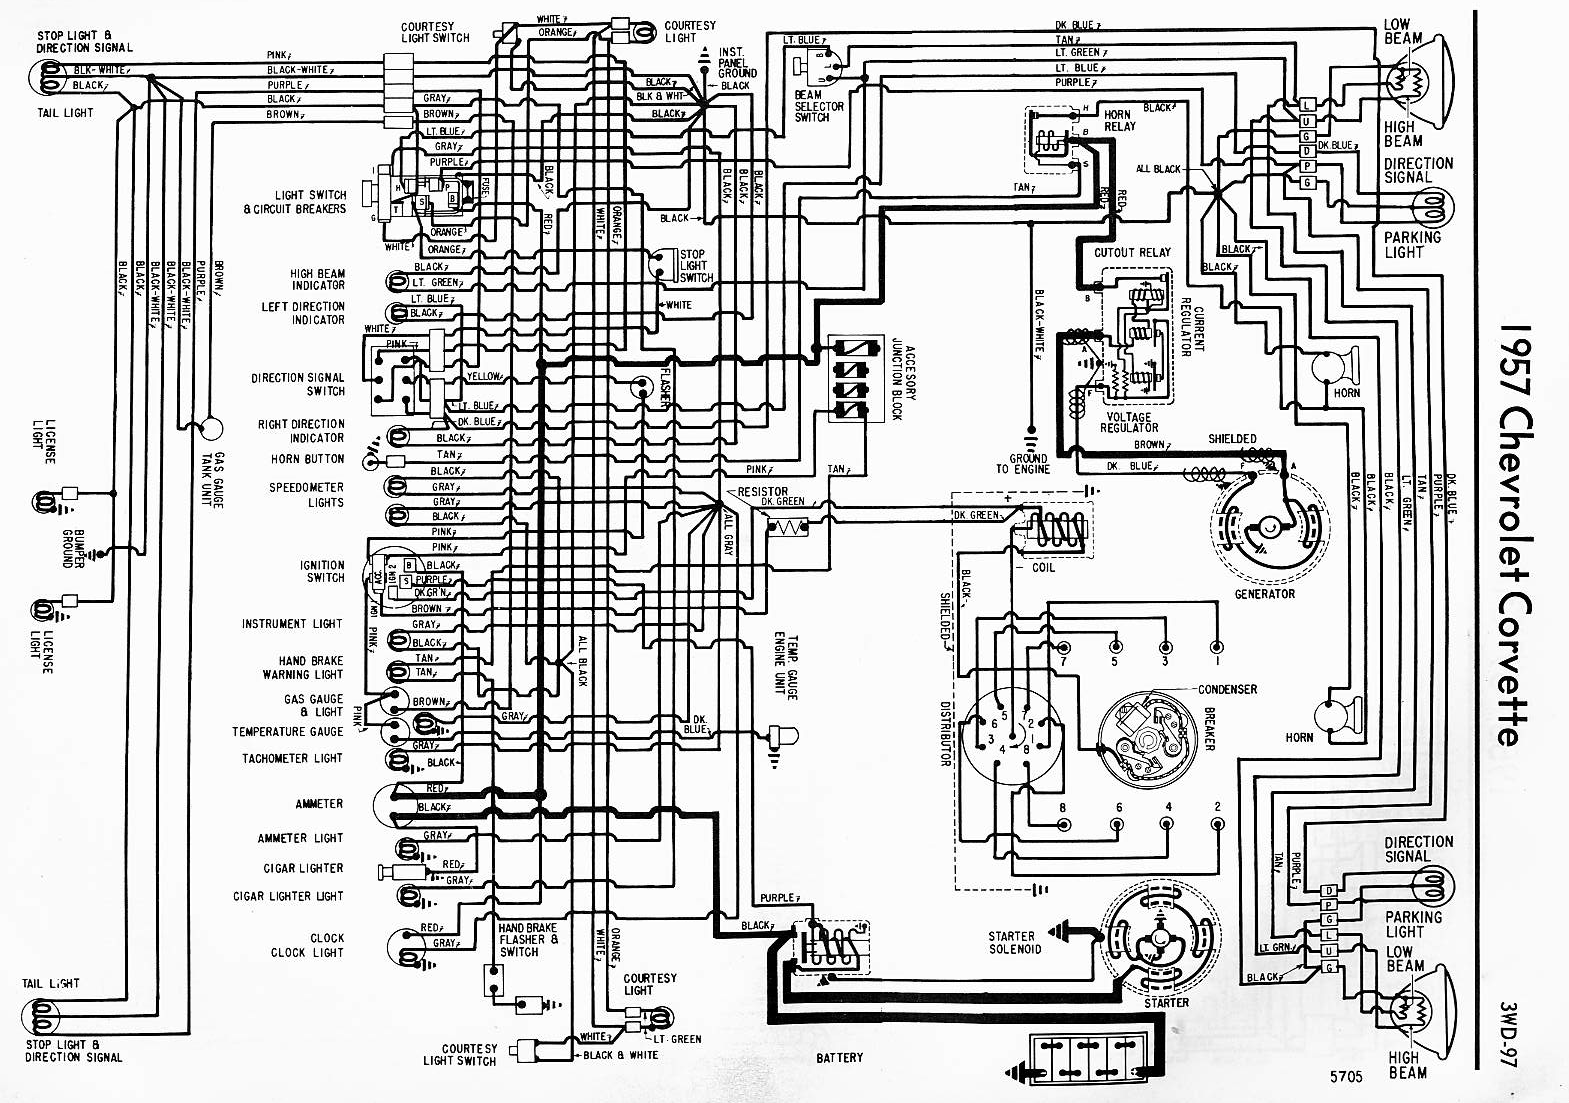 1975 Chevelle Wiring Schematic Diagram 76 Monte Carlo Corvette Tachometer Simple Diagram1975 Library